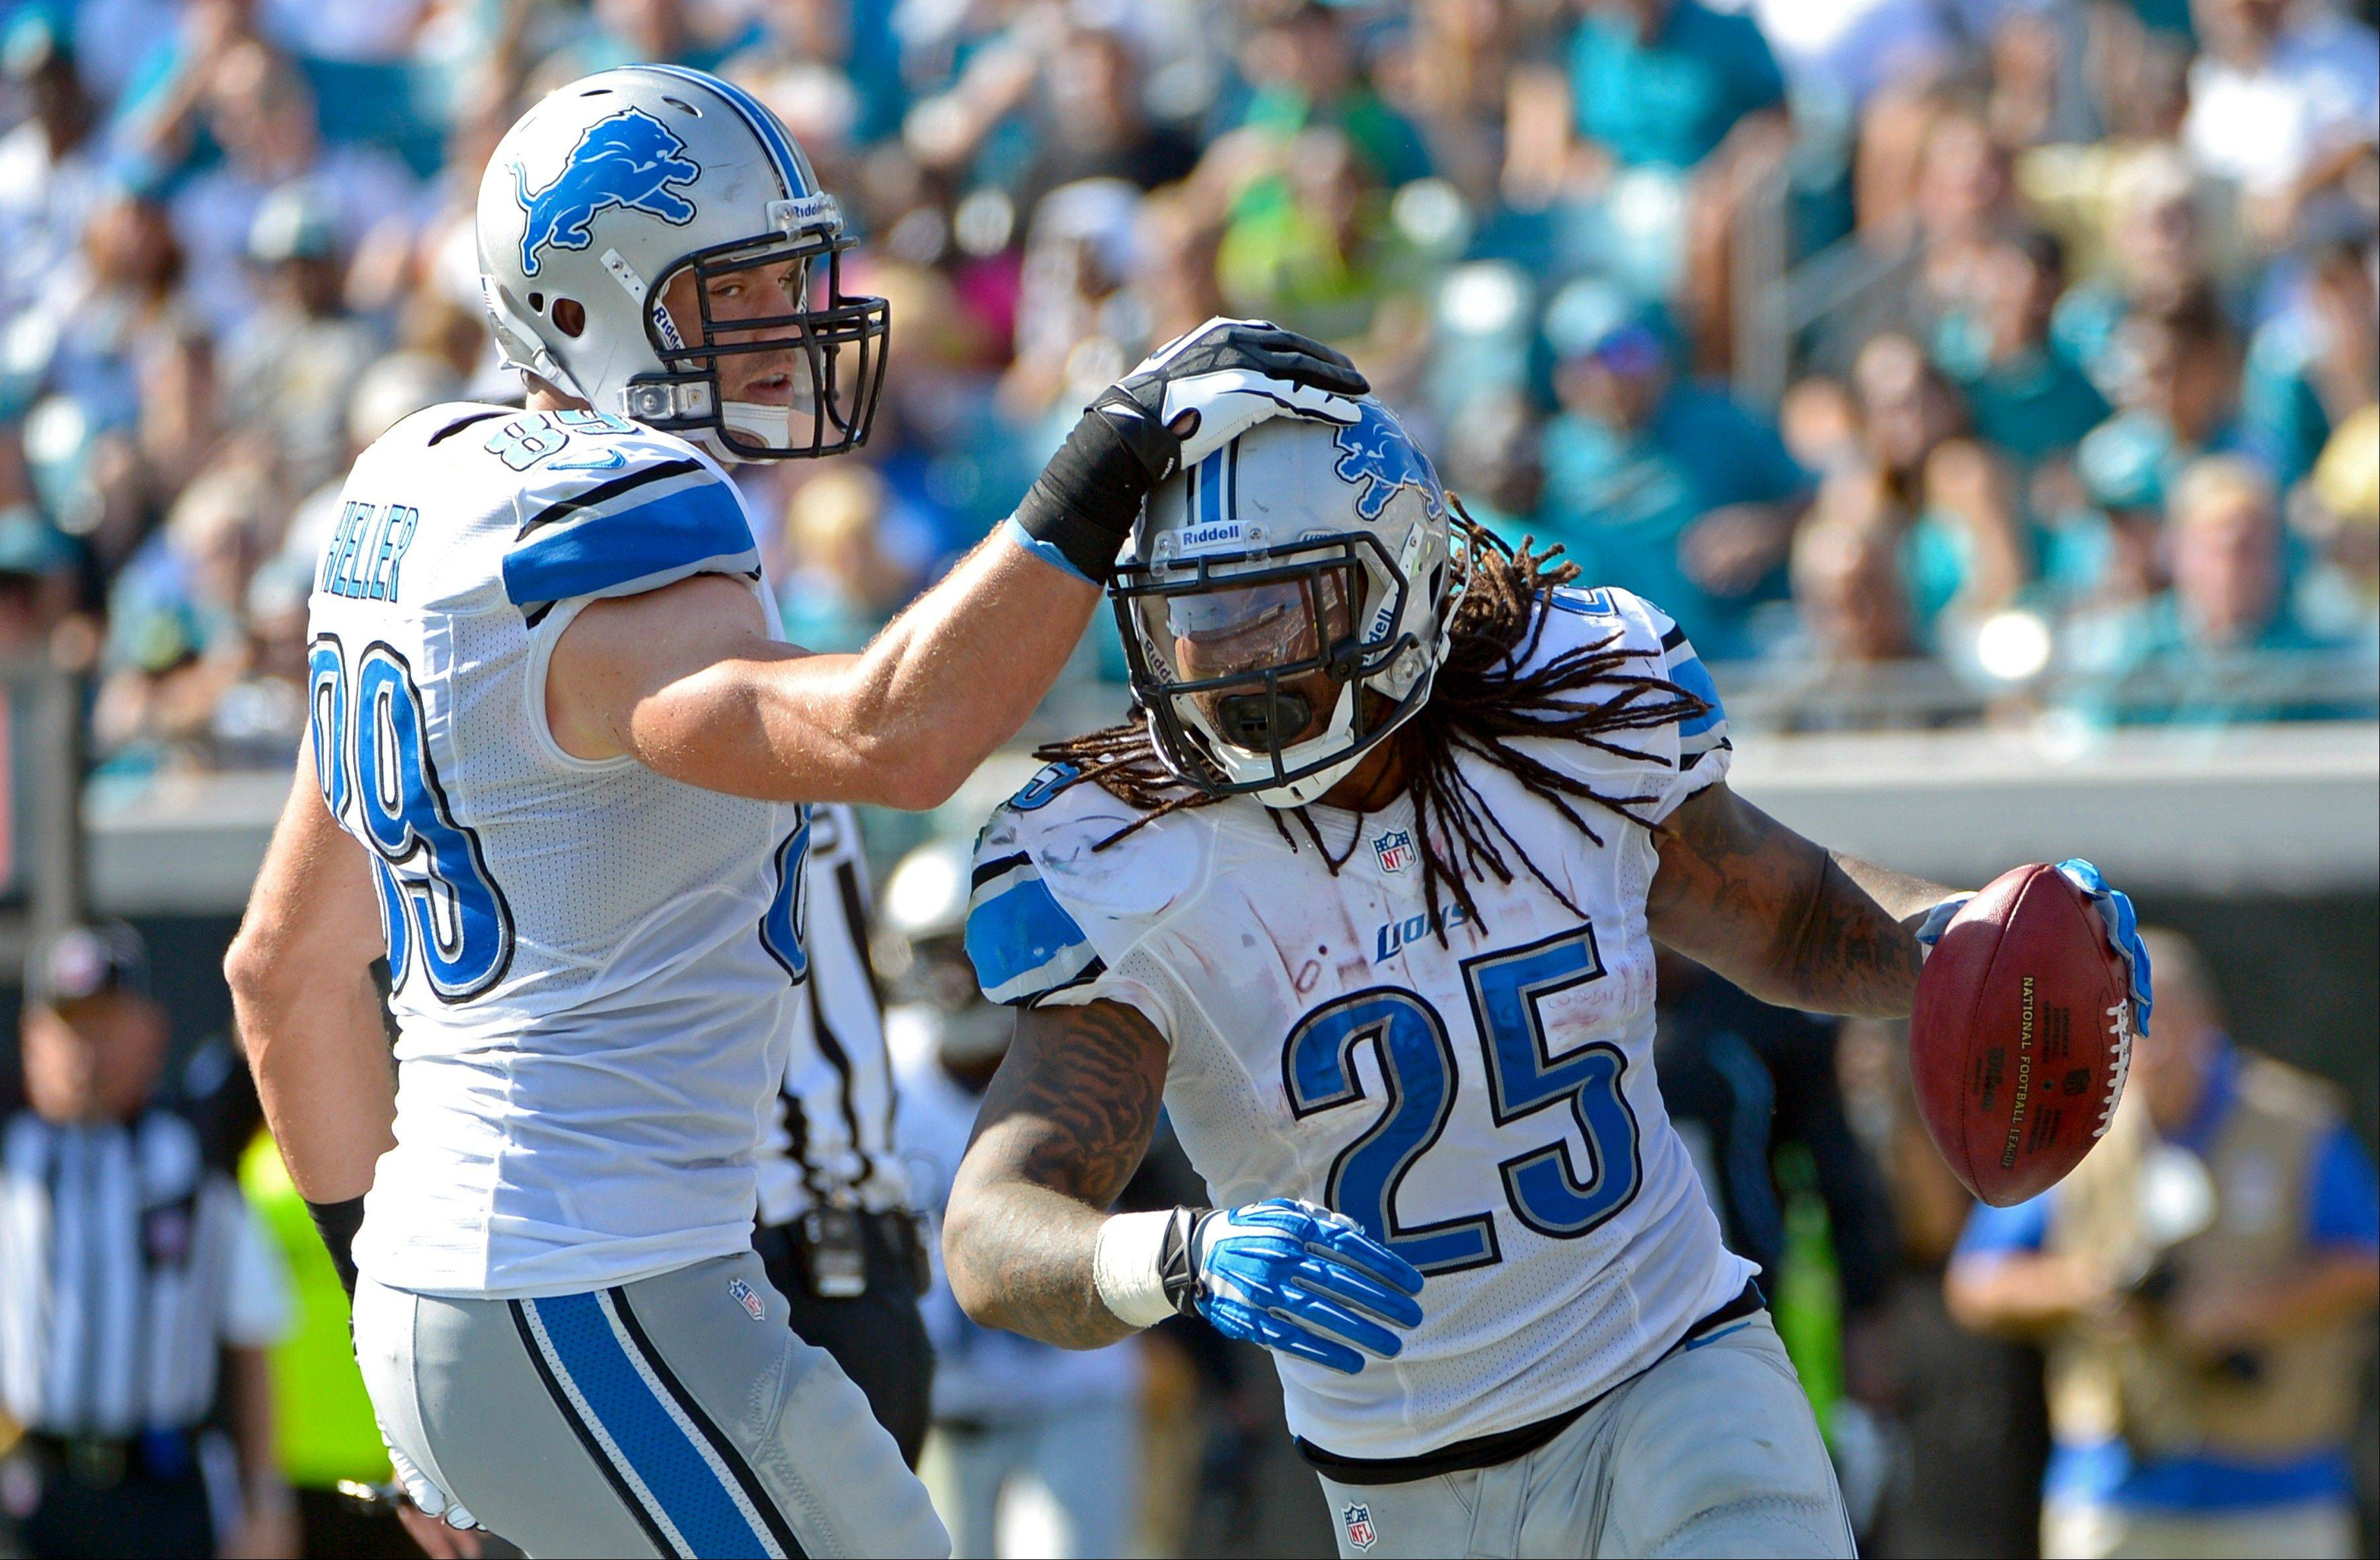 Detroit Lions running back Mikel Leshoure (25) gets a pat on the helmet from tight end Will Heller after scoring a touchdown against the Jacksonville Jaguars during the first half Sunday in Jacksonville, Fla.